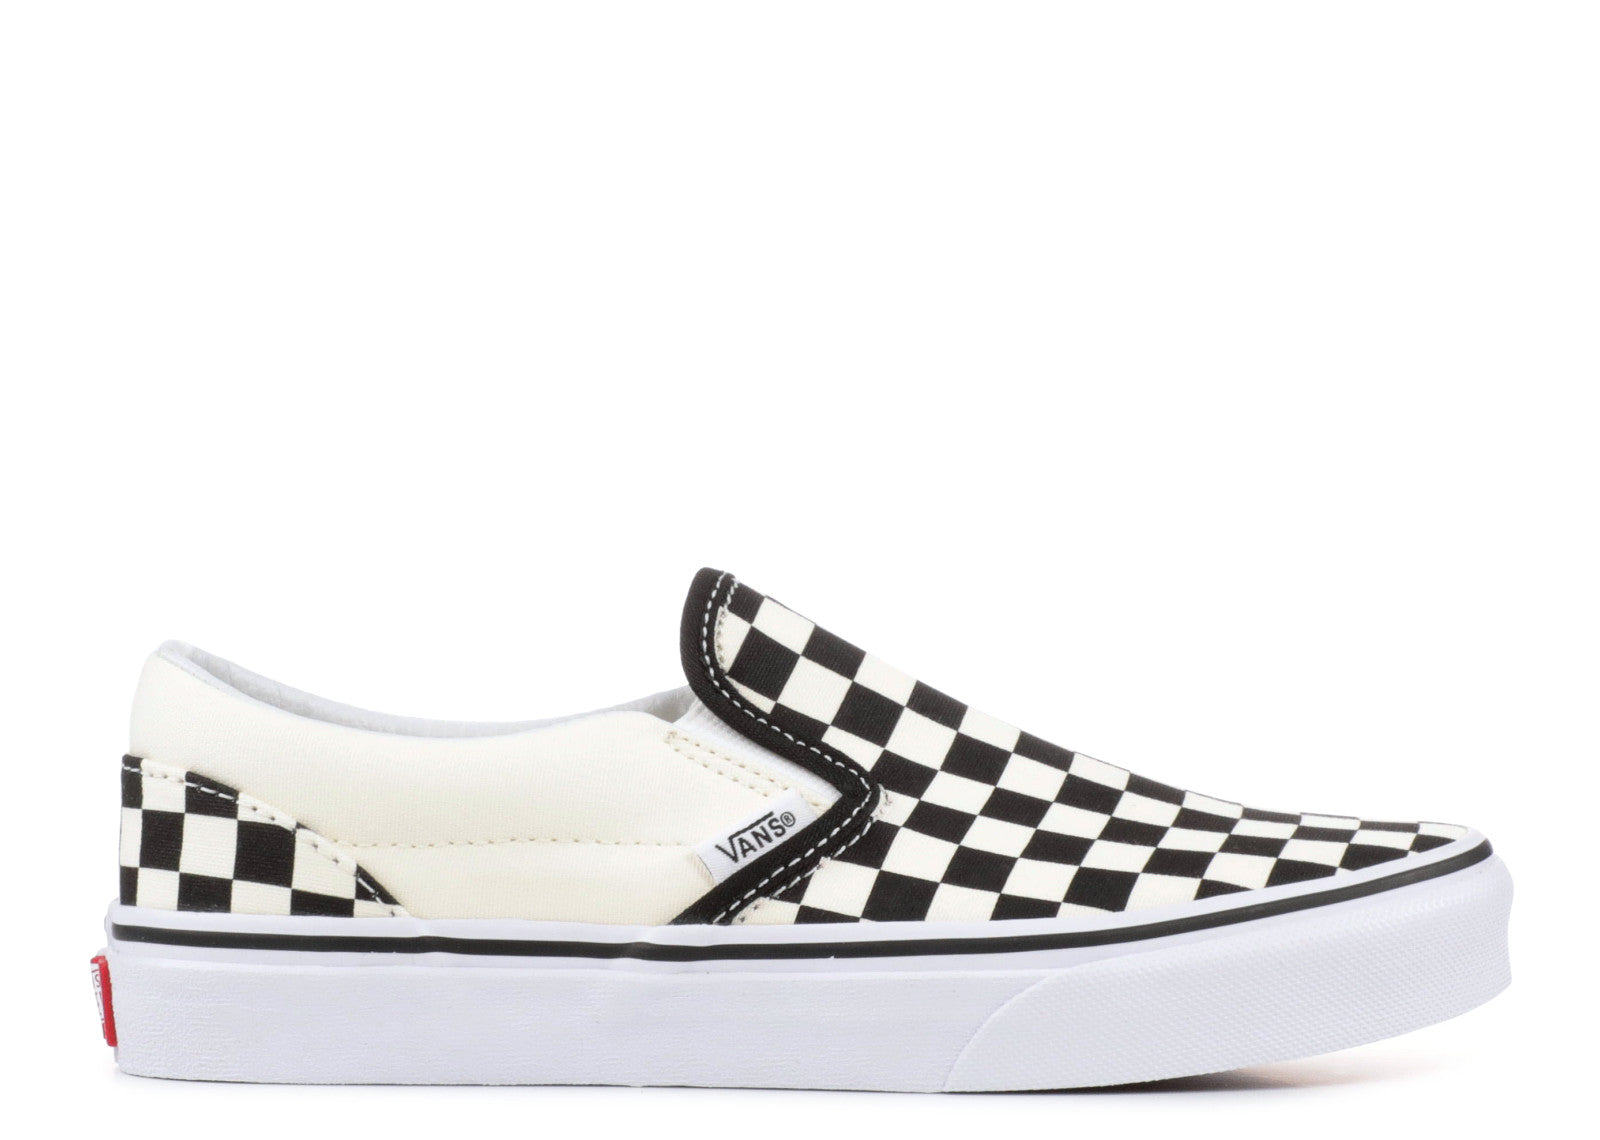 6ebaef138b Vans Classic Slip-On Black  amp  White Checkerboard AU223426 Famous Rock  Shop Newcastle 2300